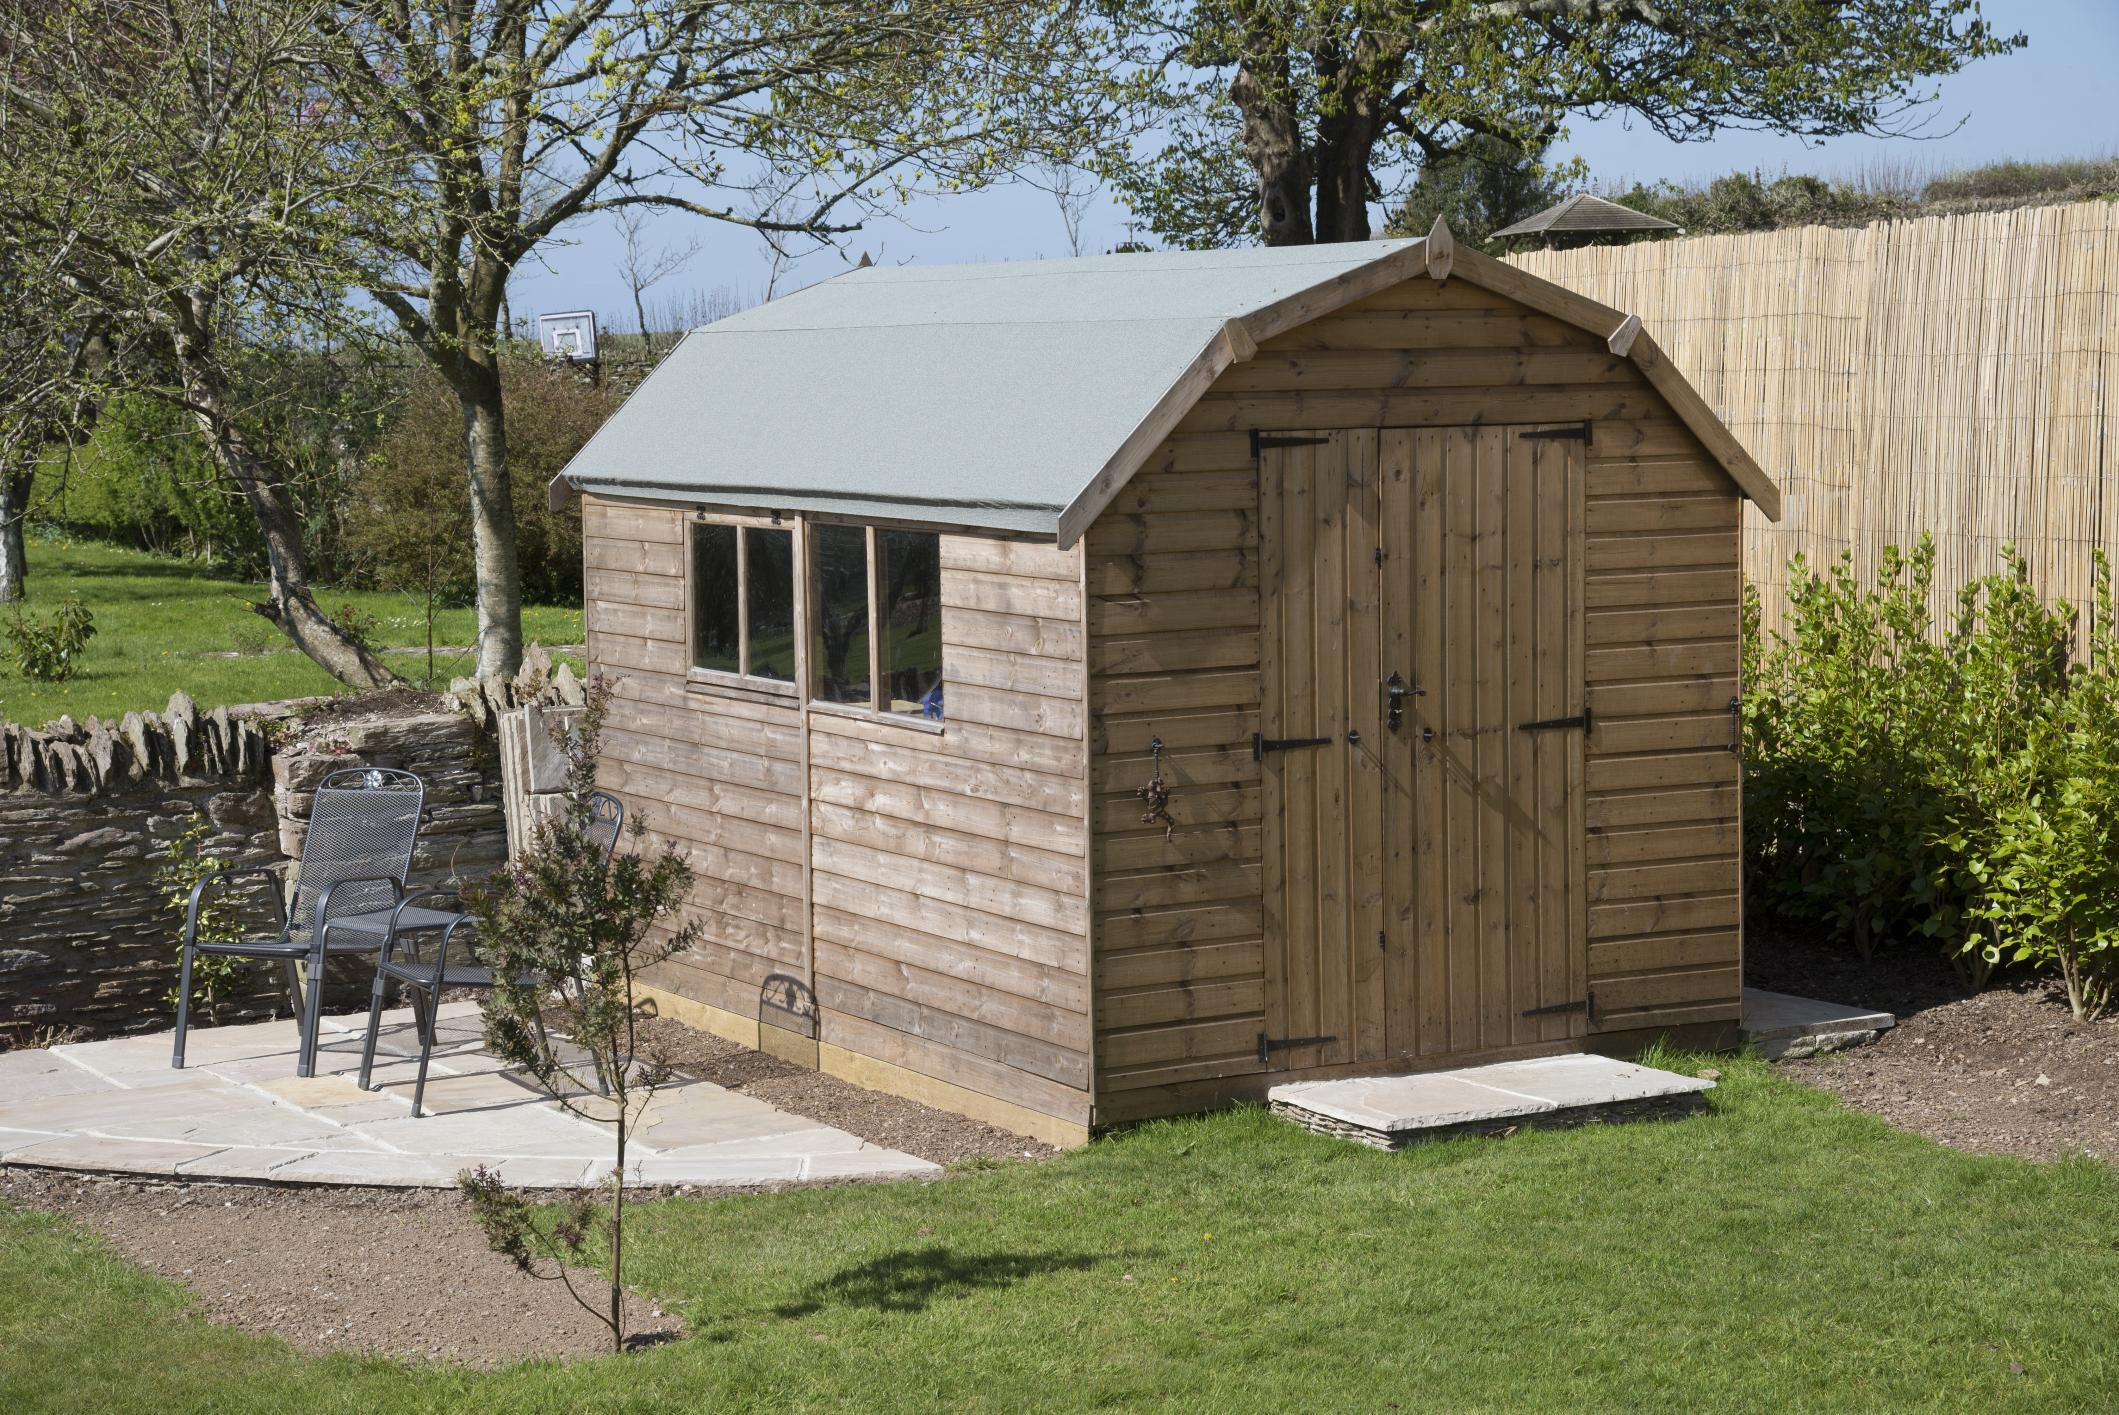 custom wooden shed built by Springfield shed builder